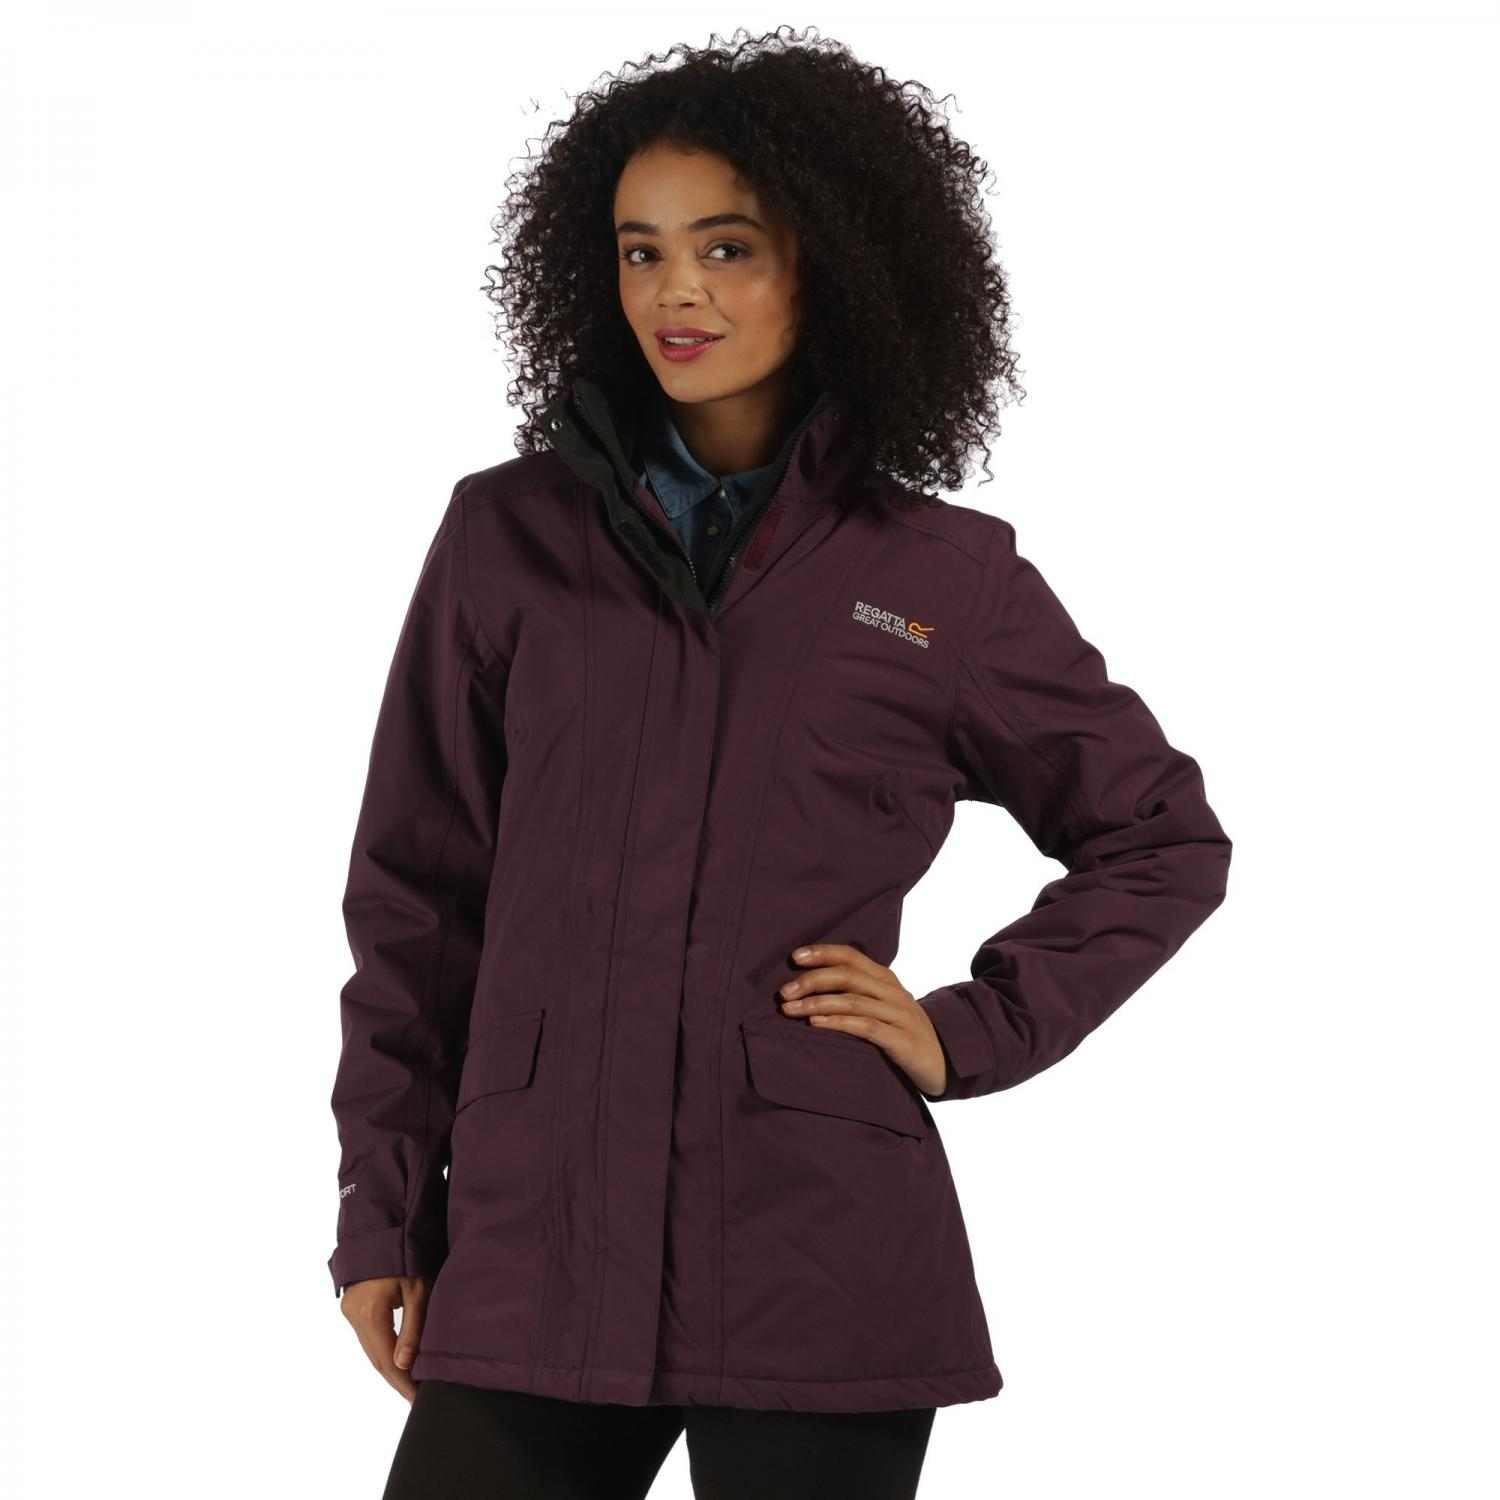 Blanchet Jacket Blackberry Wine